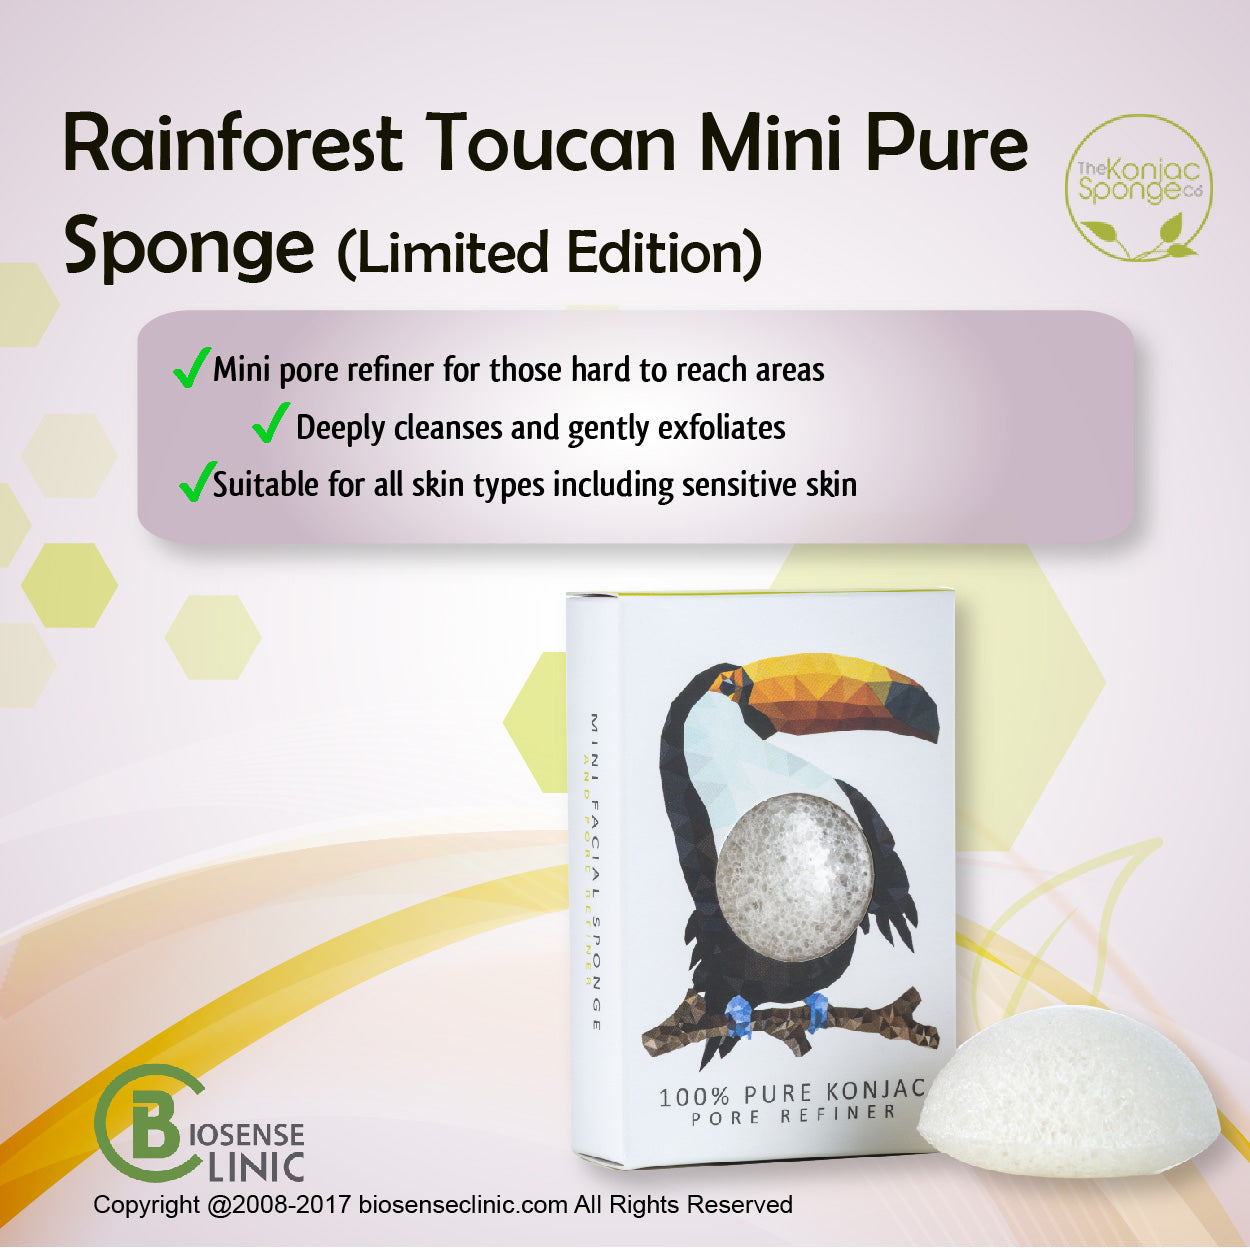 Konjac Mini Pore Refiner Rainforest Toucan mobile banner